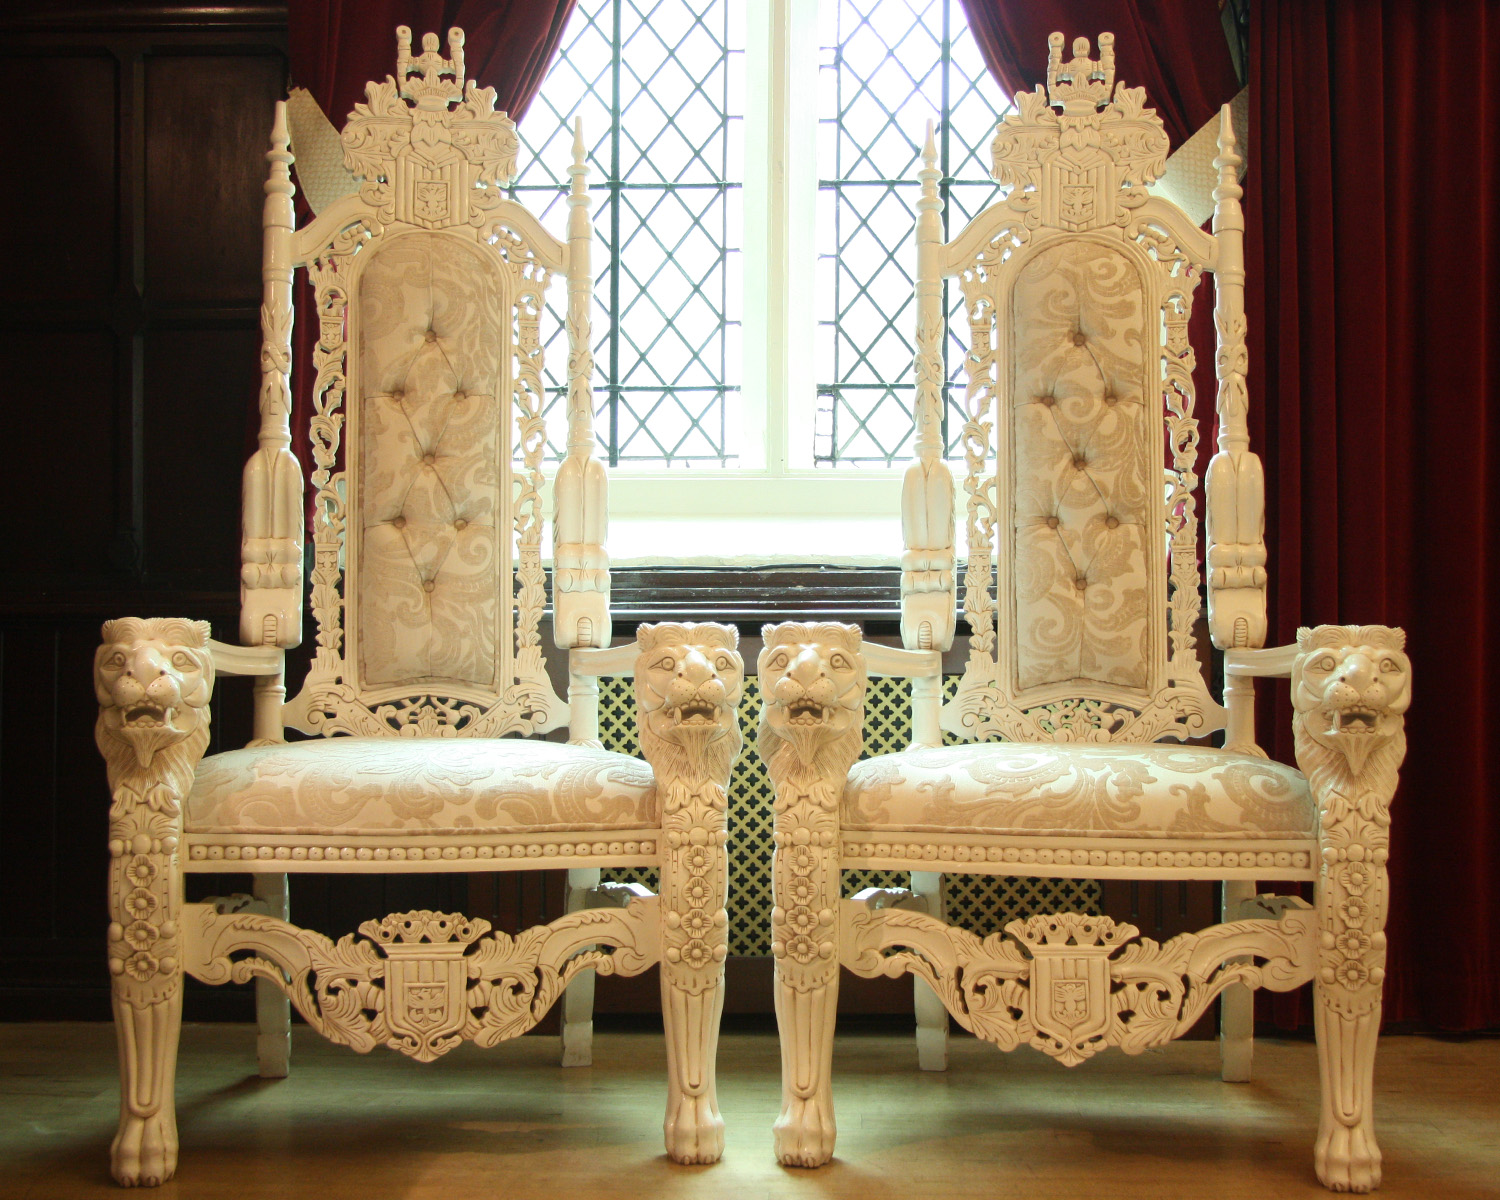 Wedding Bride And Groom Chairs Rattan Peacock Chair For Sale Posh Covers Bows Throne